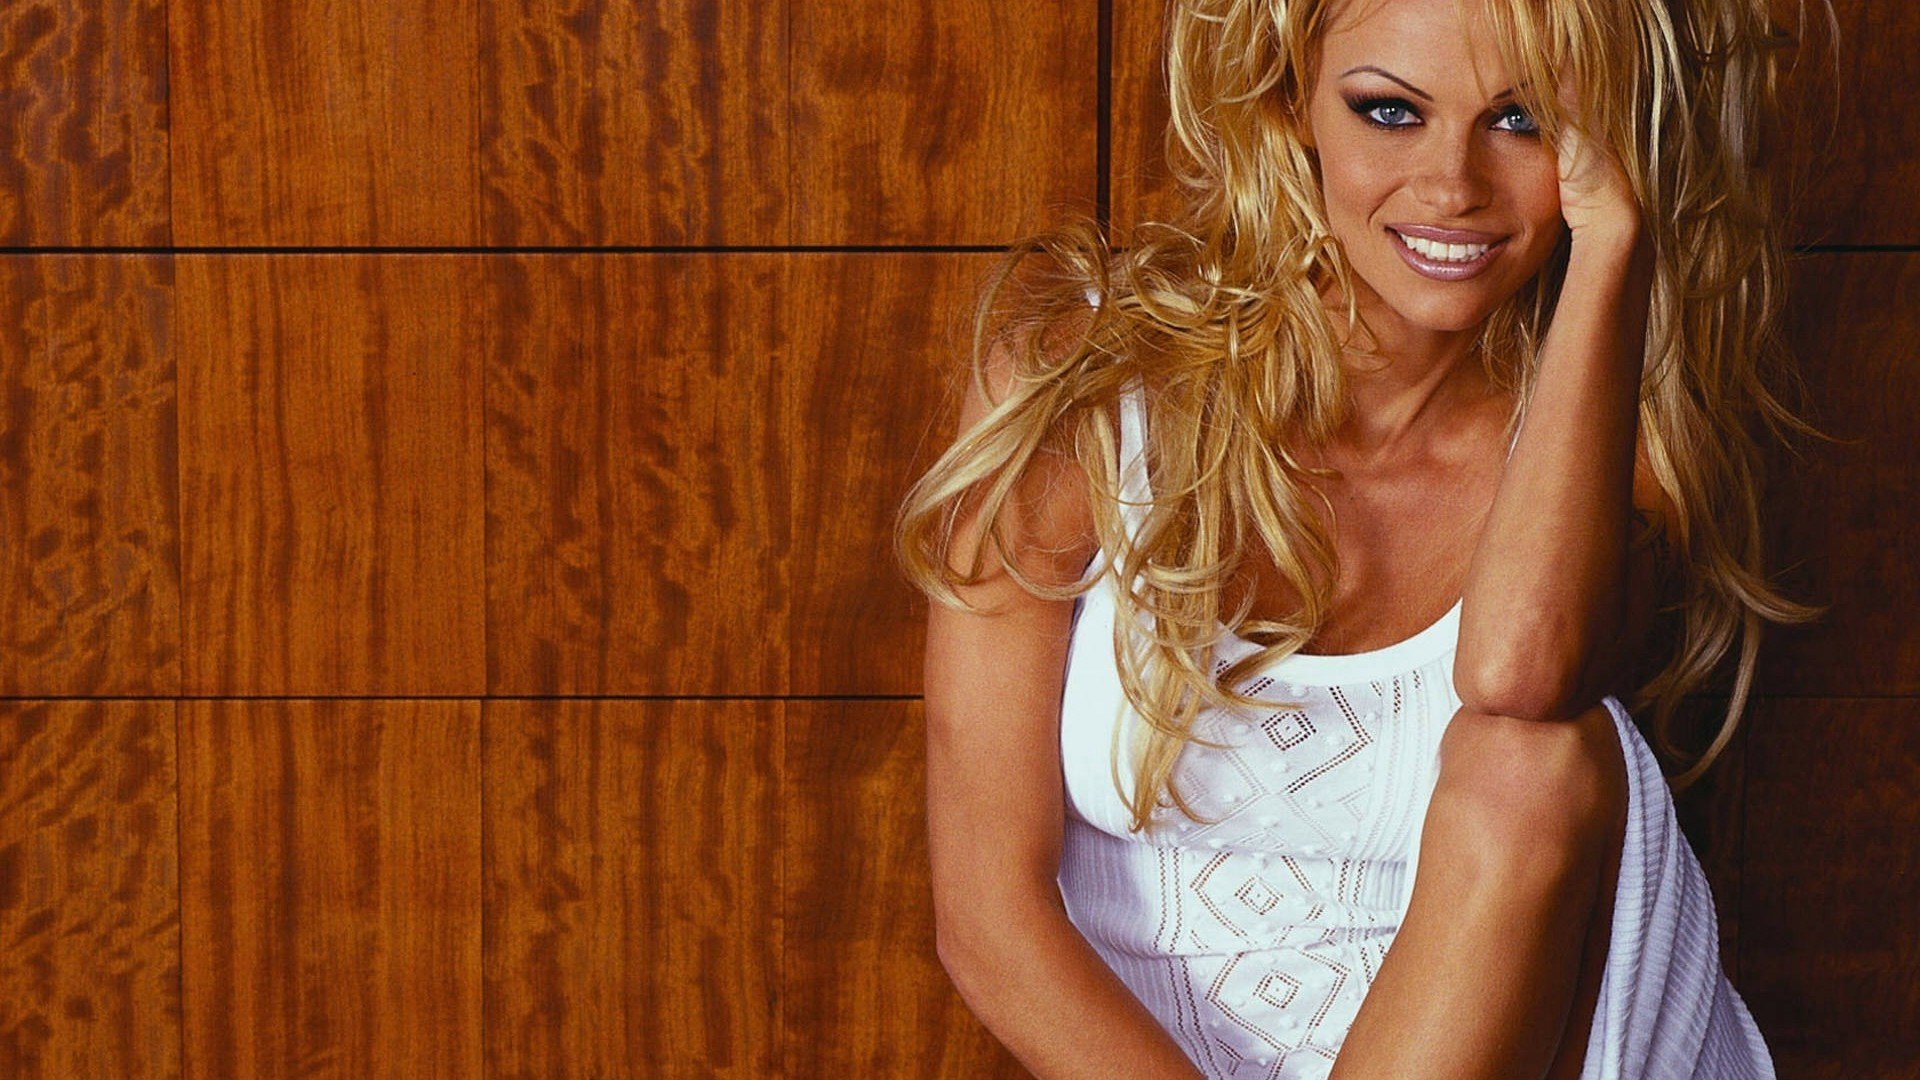 With Hd pictures of pam anderson nude